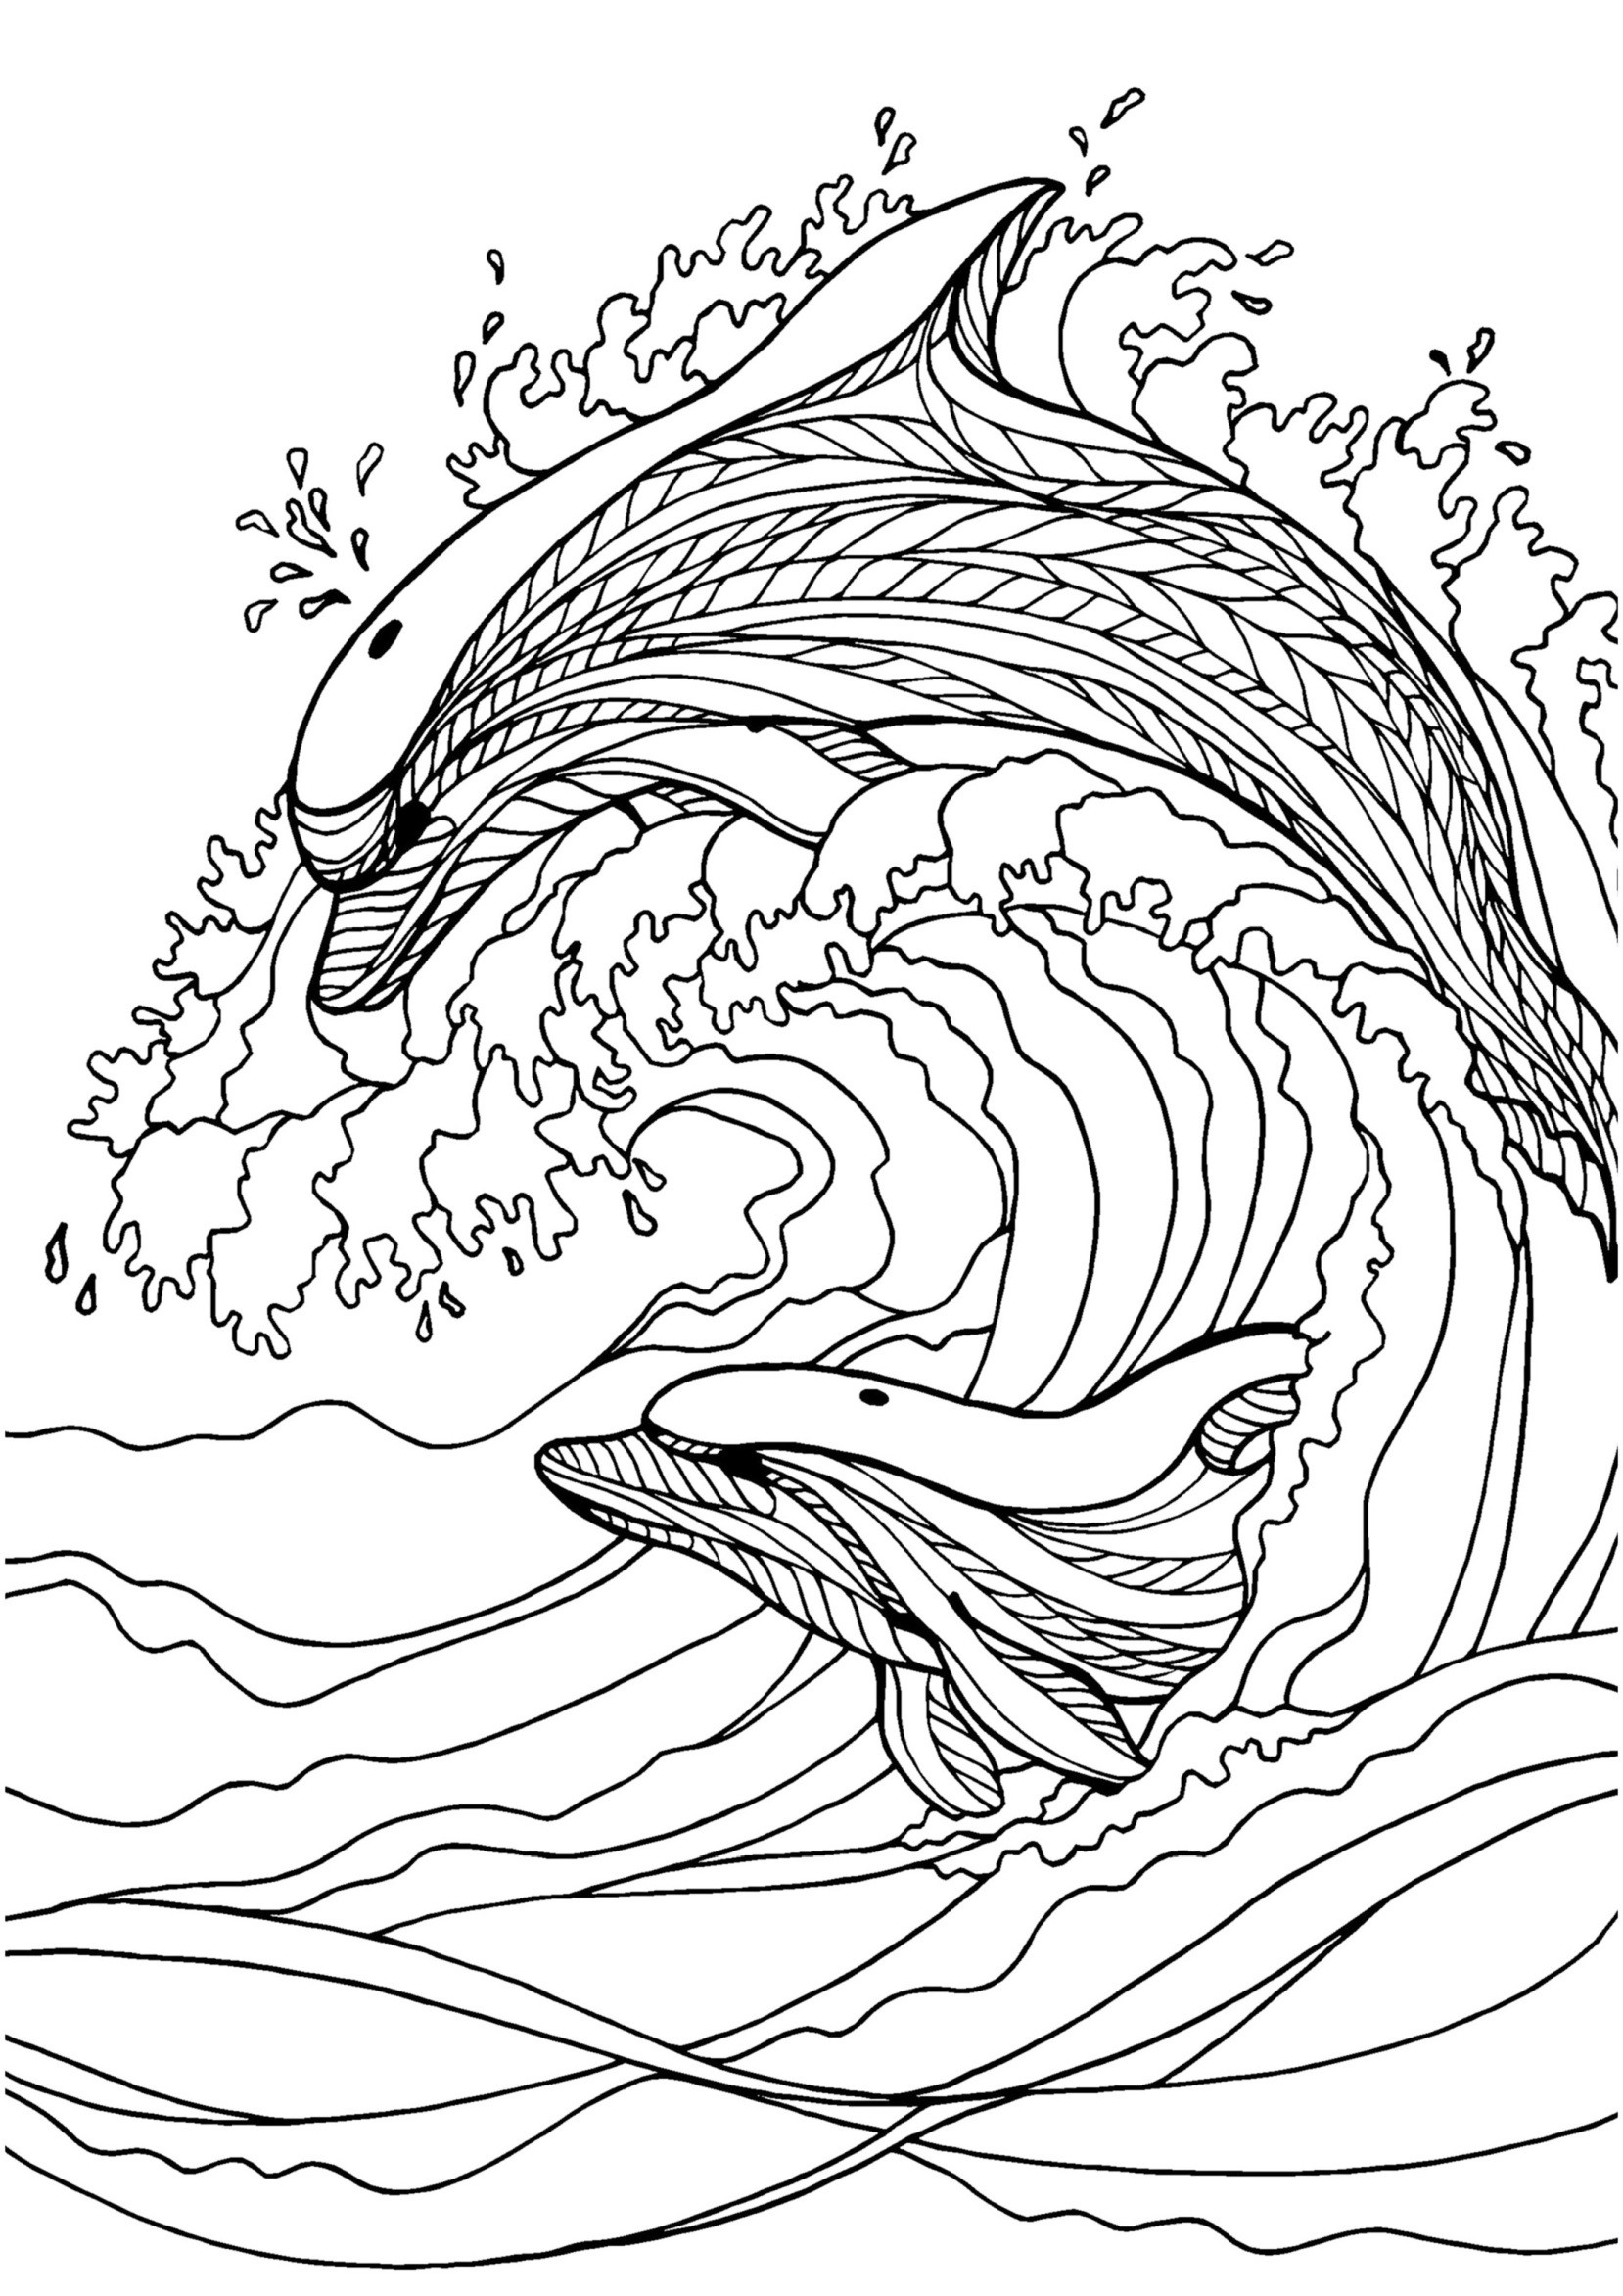 dolphin colouring cute dolphin coloring pages bestappsforkidscom dolphin colouring